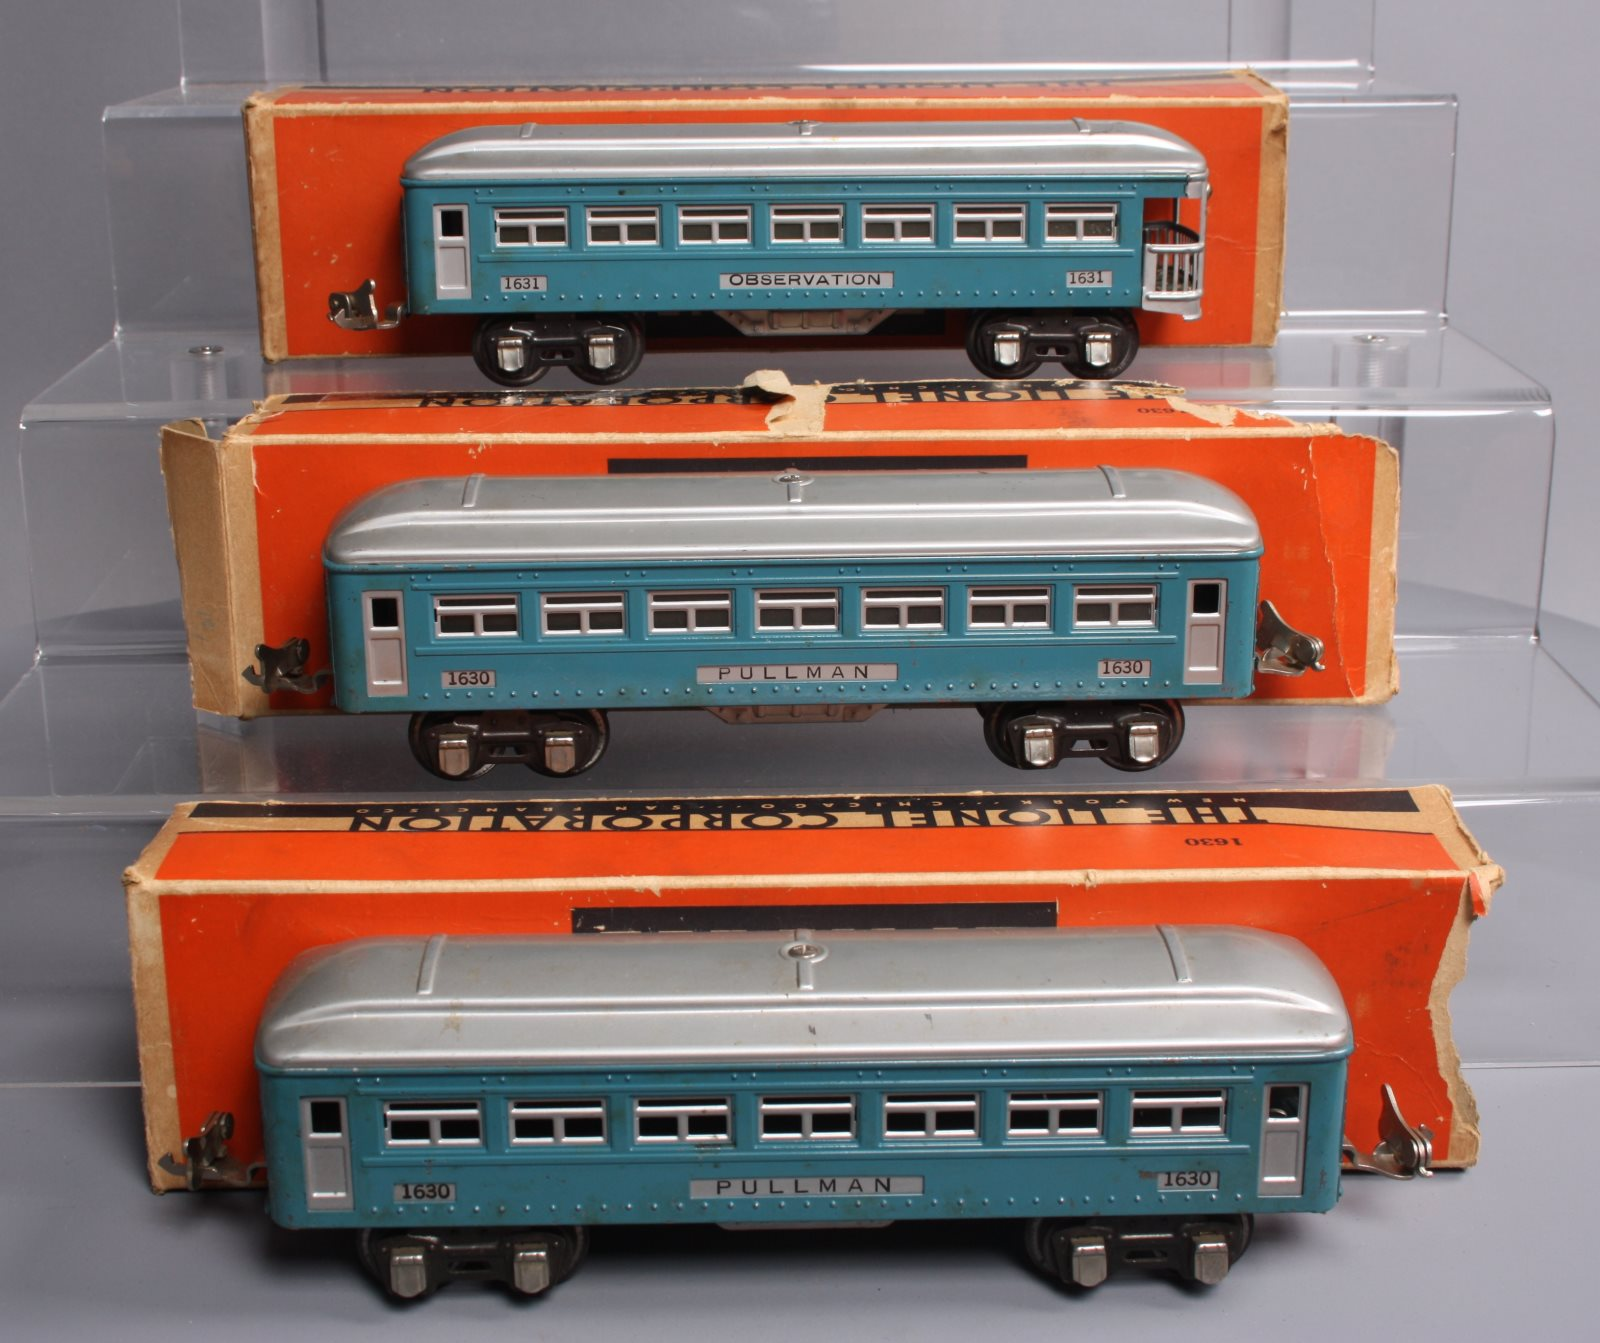 Lionel 1630S Blue & Silver Tinplate 3-Car Pullman Set: 1630, 1630, 1631/Box  Lionel 1630S